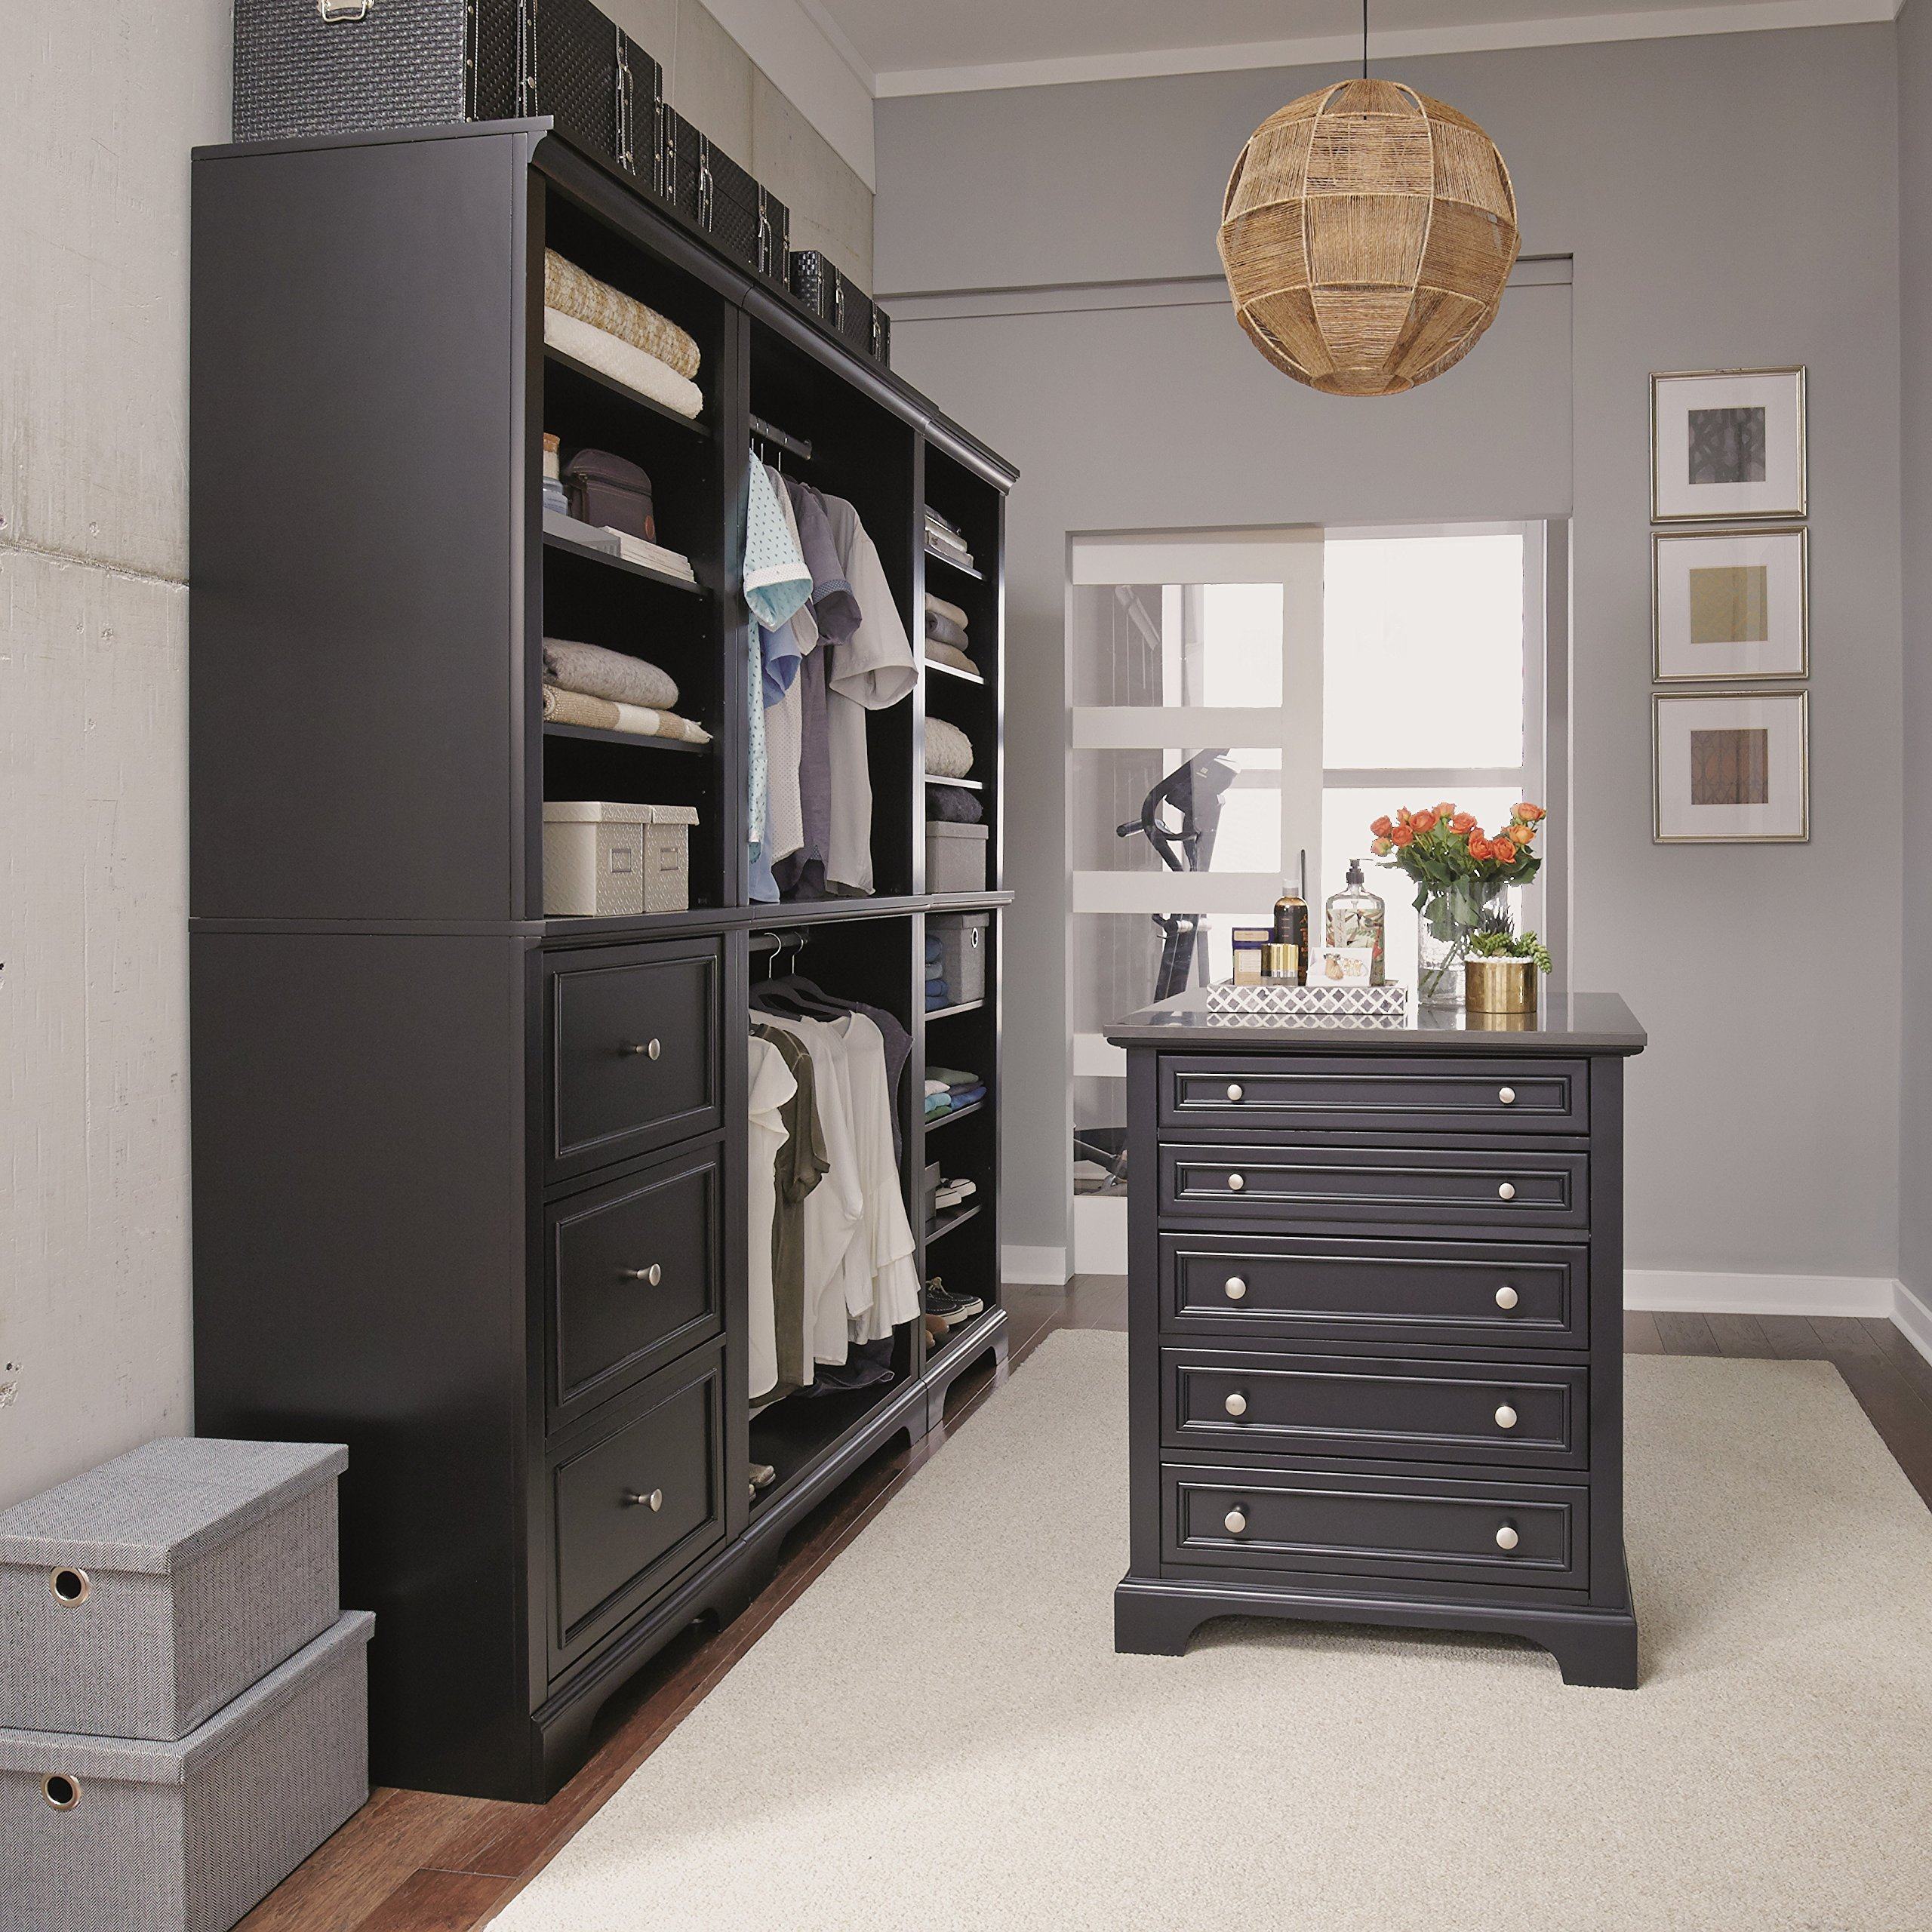 Bedford Black 4 Piece Closet/Storage System Organizer by Home Styles by Home Styles